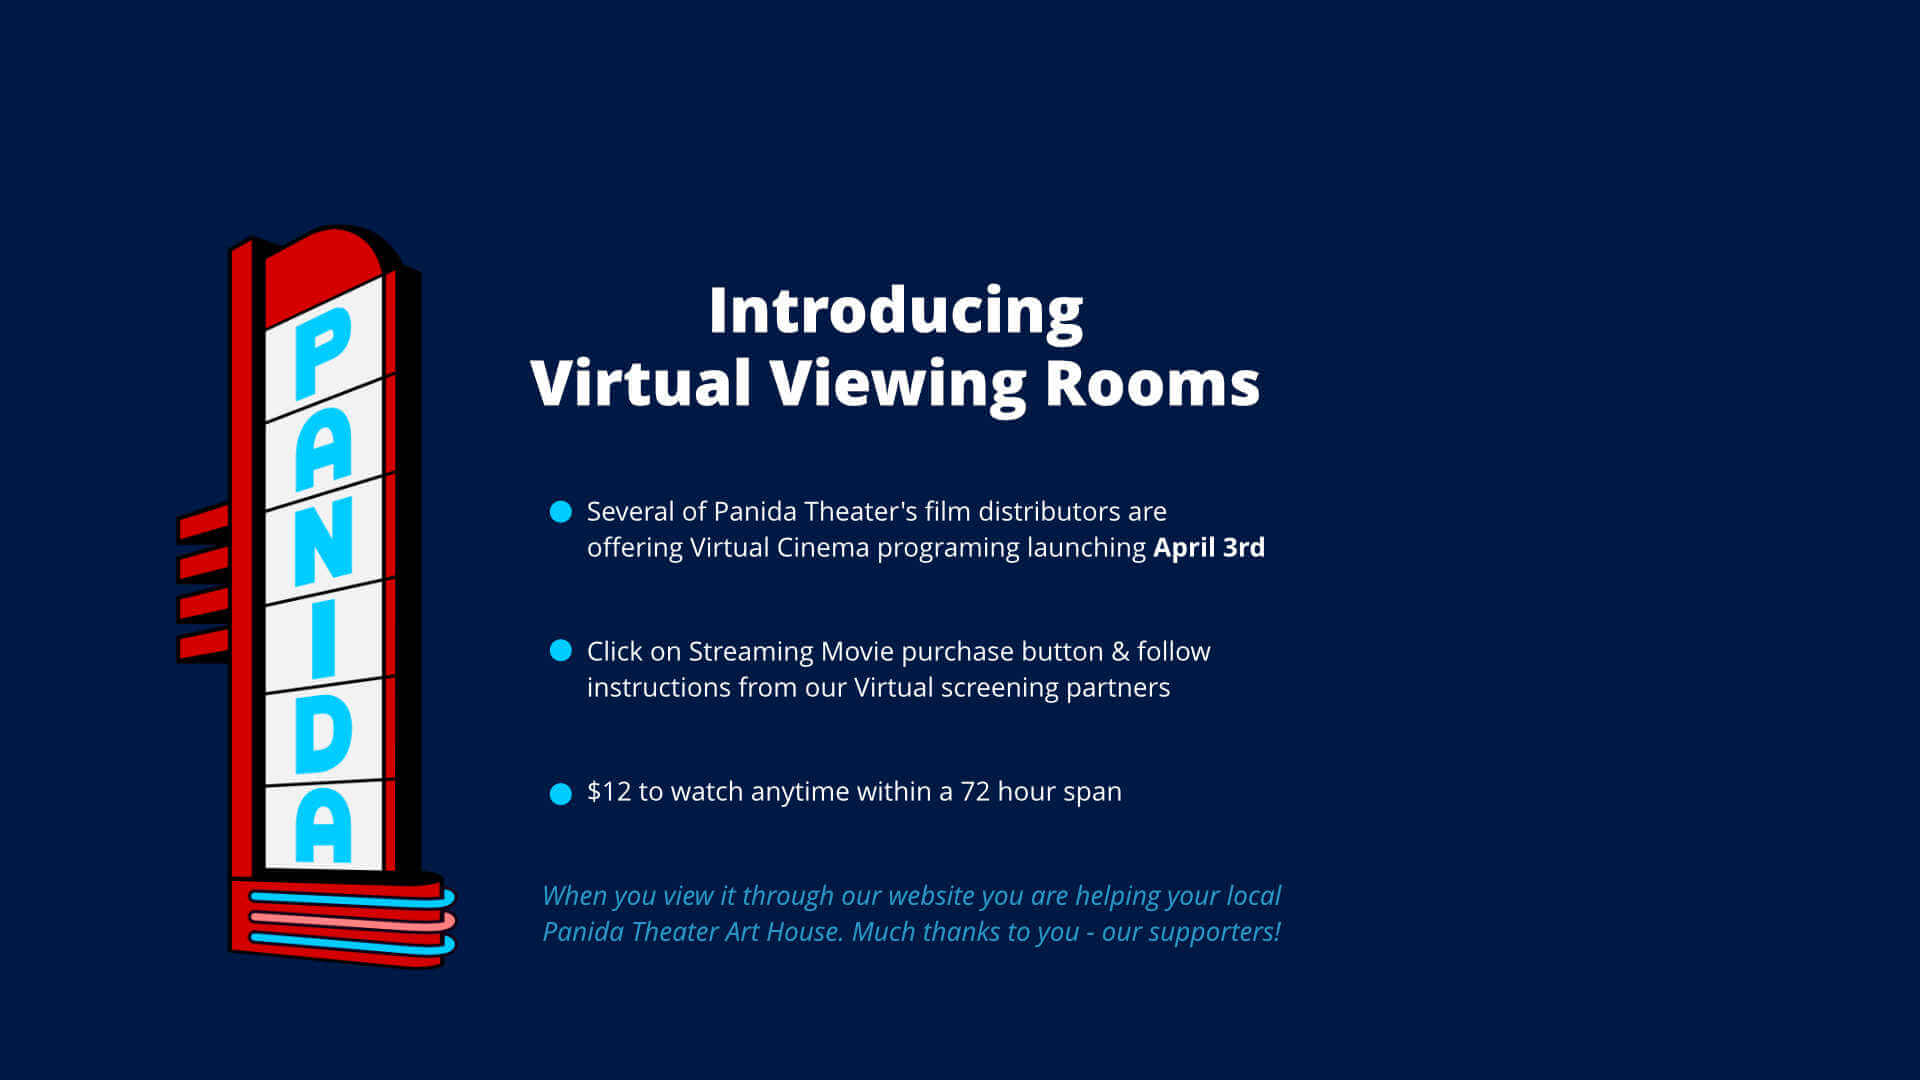 Virtual Viewing Rooms